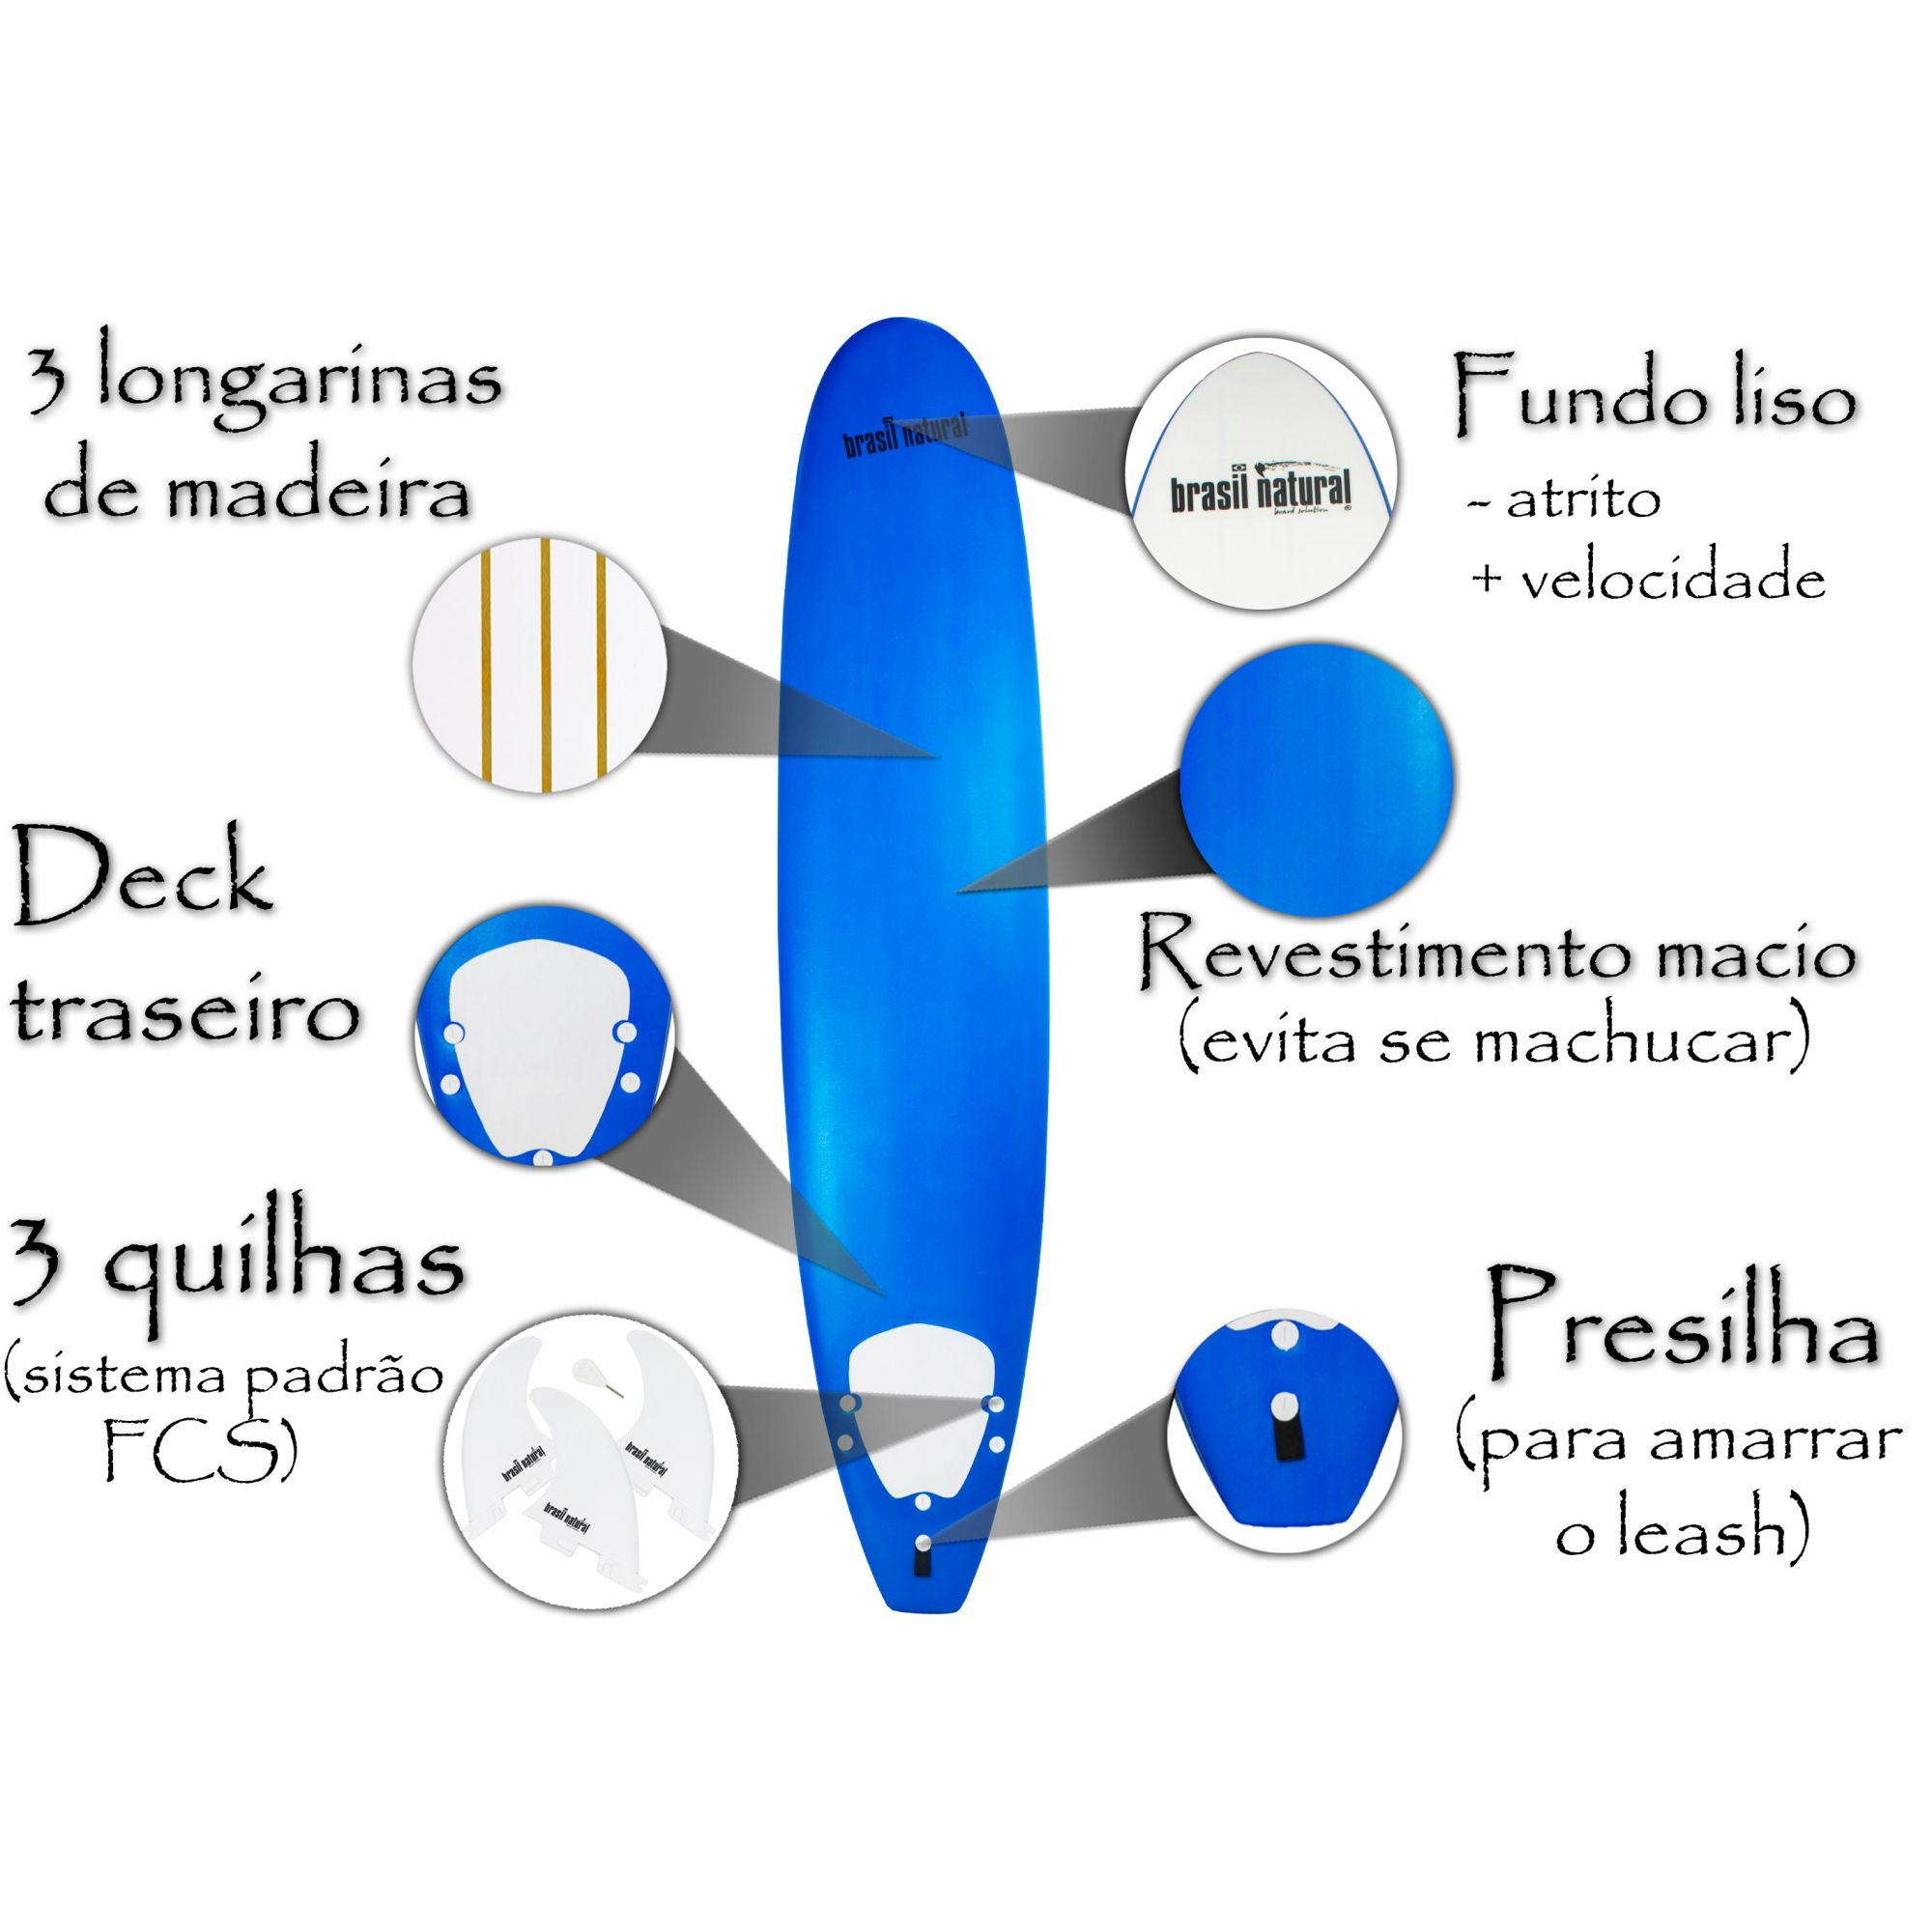 Prancha de surf long board 9.1 NEW EDITION + kit surf - Brasil Natural